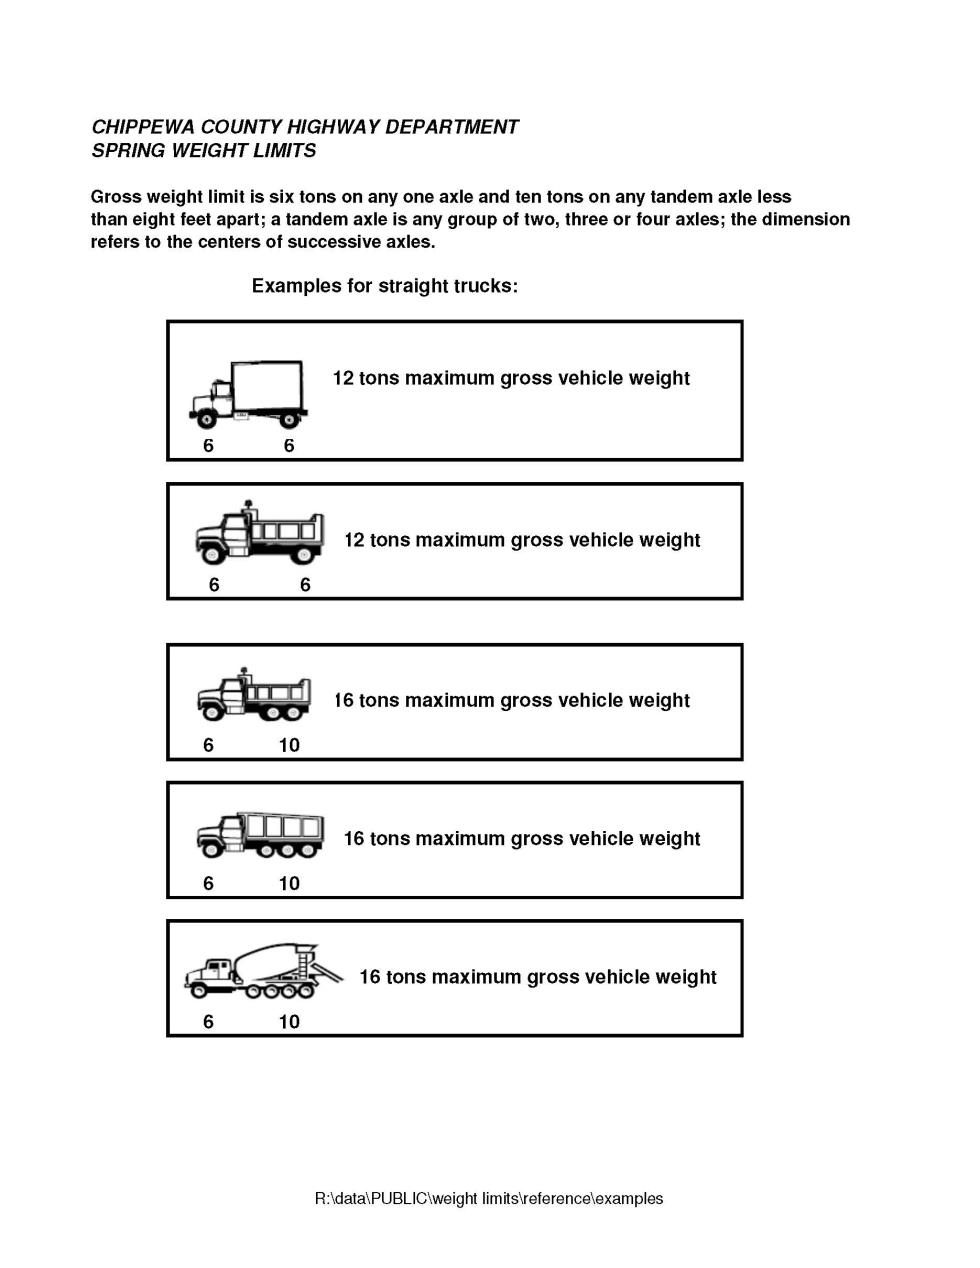 Straight Truck Examples